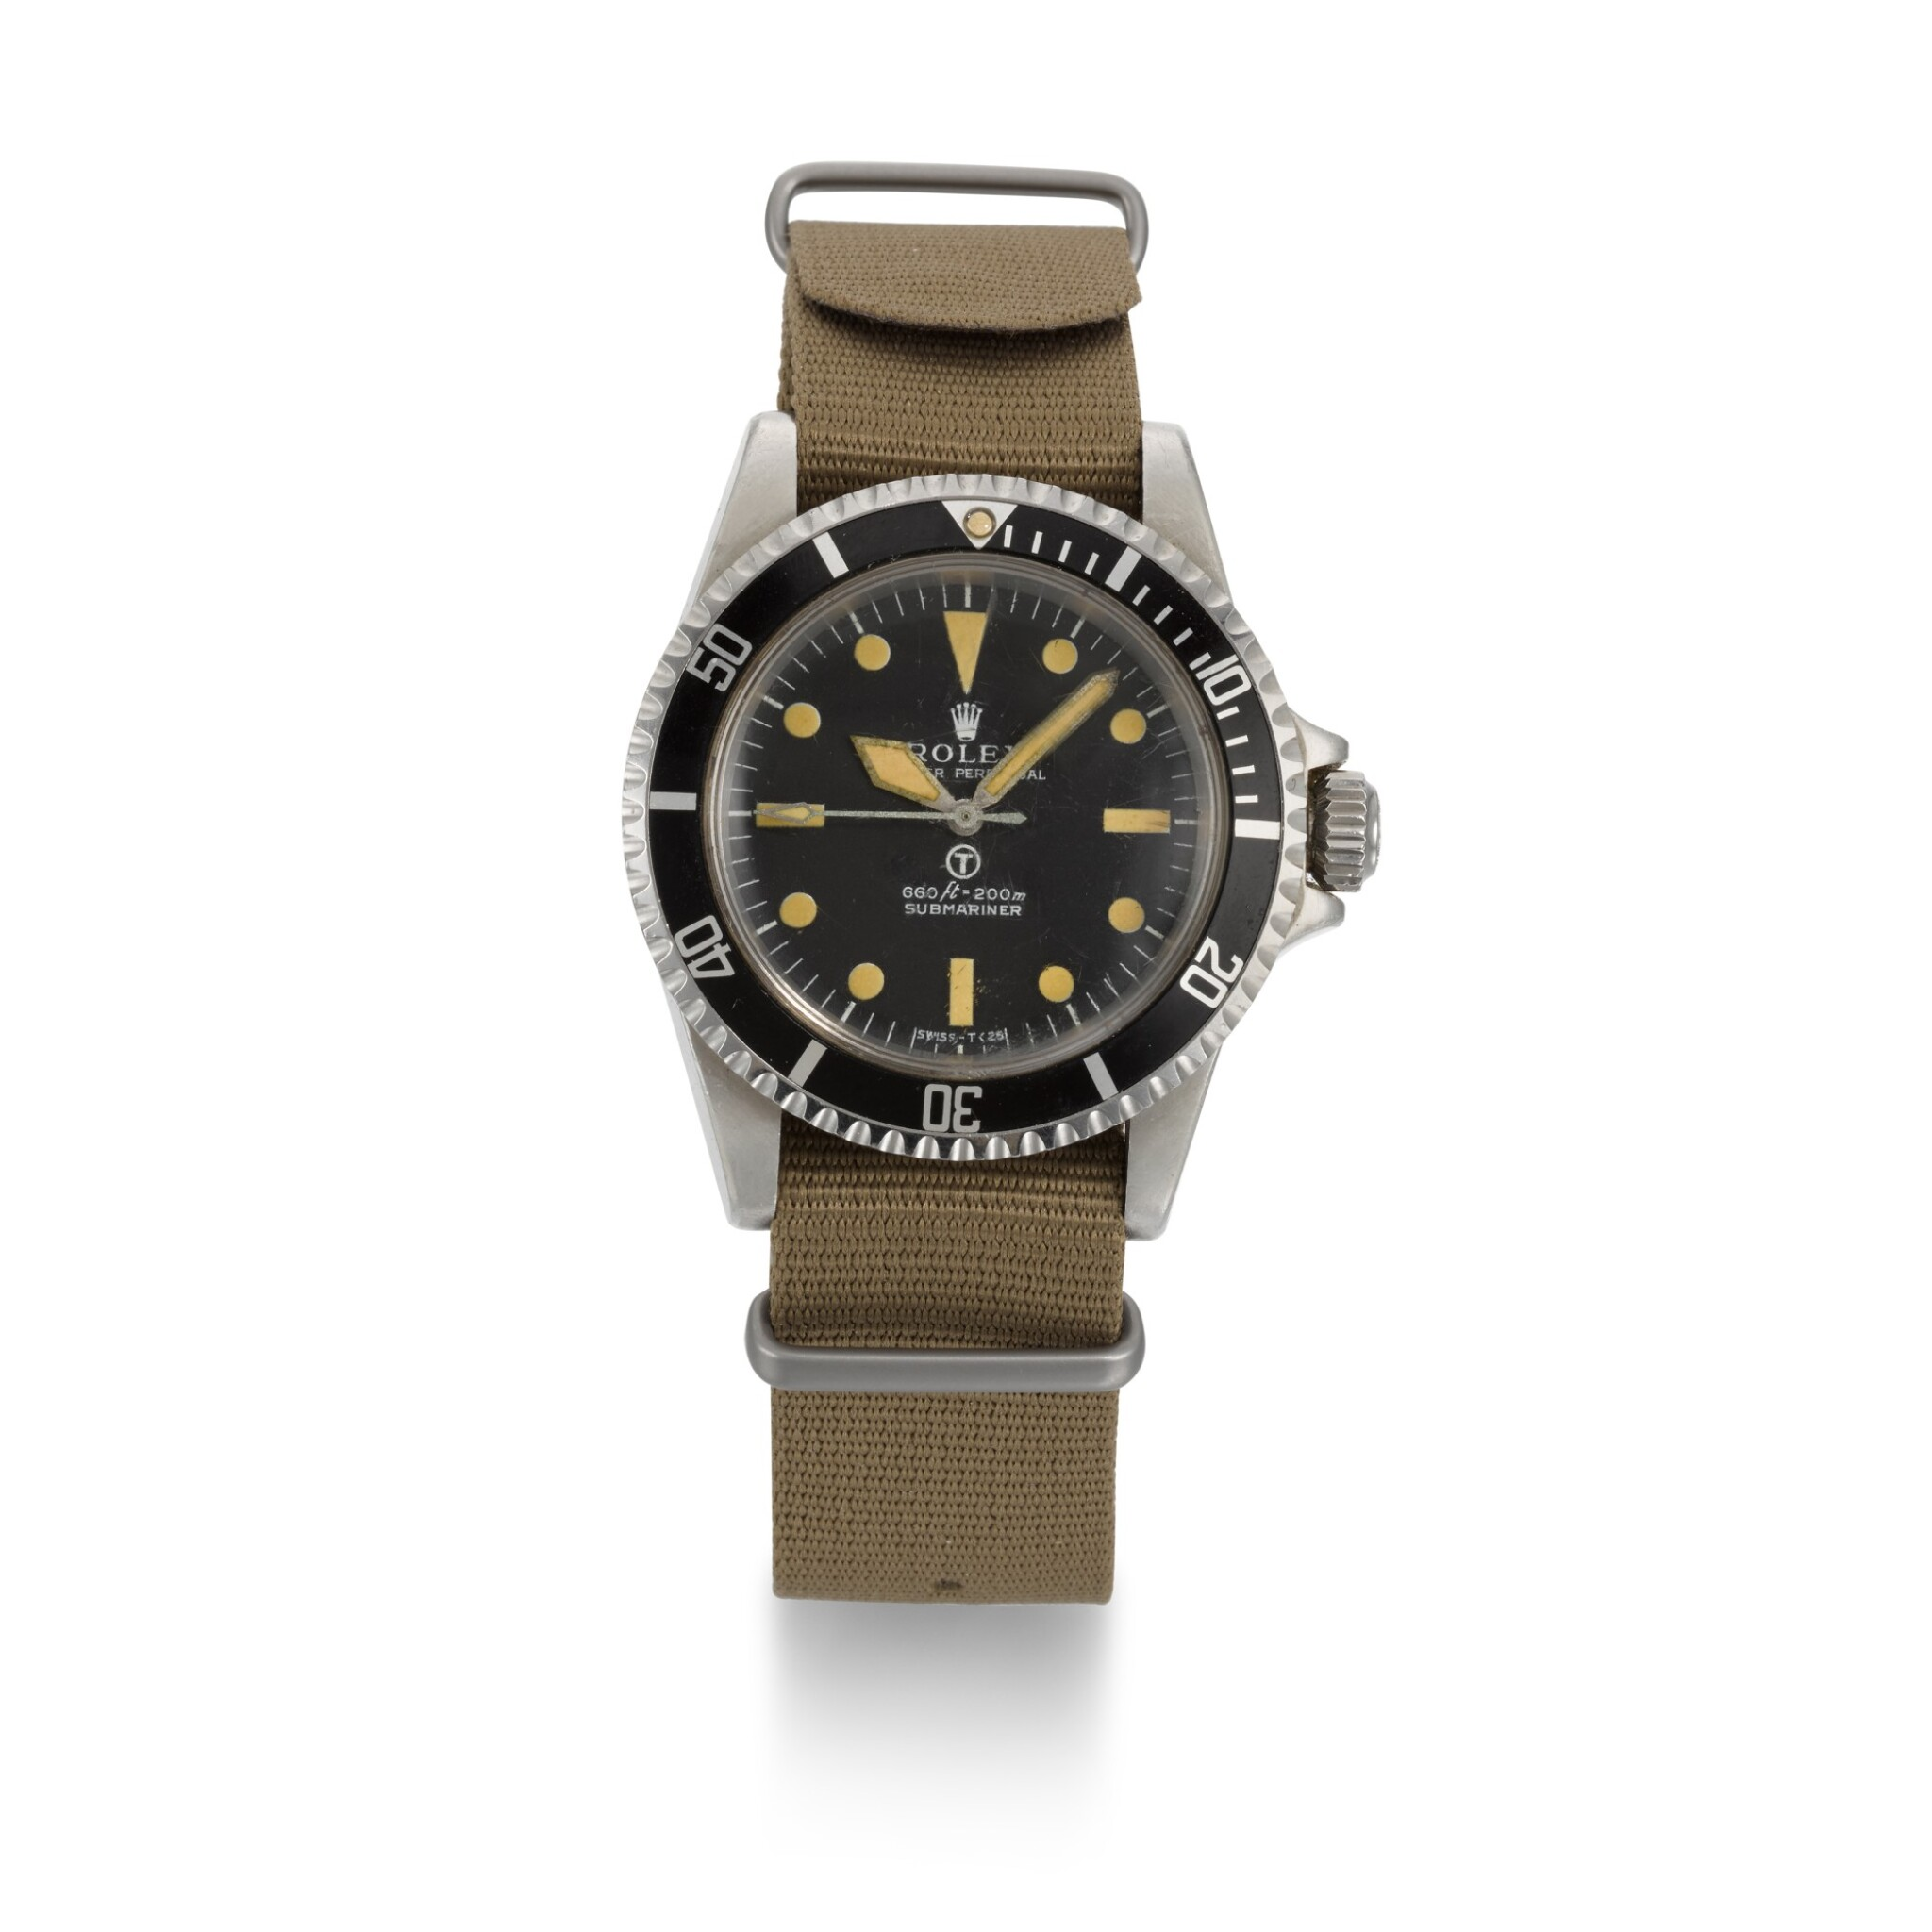 View full screen - View 1 of Lot 375. ROLEX | A RARE STAINLESS STEEL CENTRE SECONDS WRISTWATCH MADE FOR THE BRITISH MILITARY, REF 5513 NO 3826463 SUBMARINER, MADE AND ISSUED 1974.